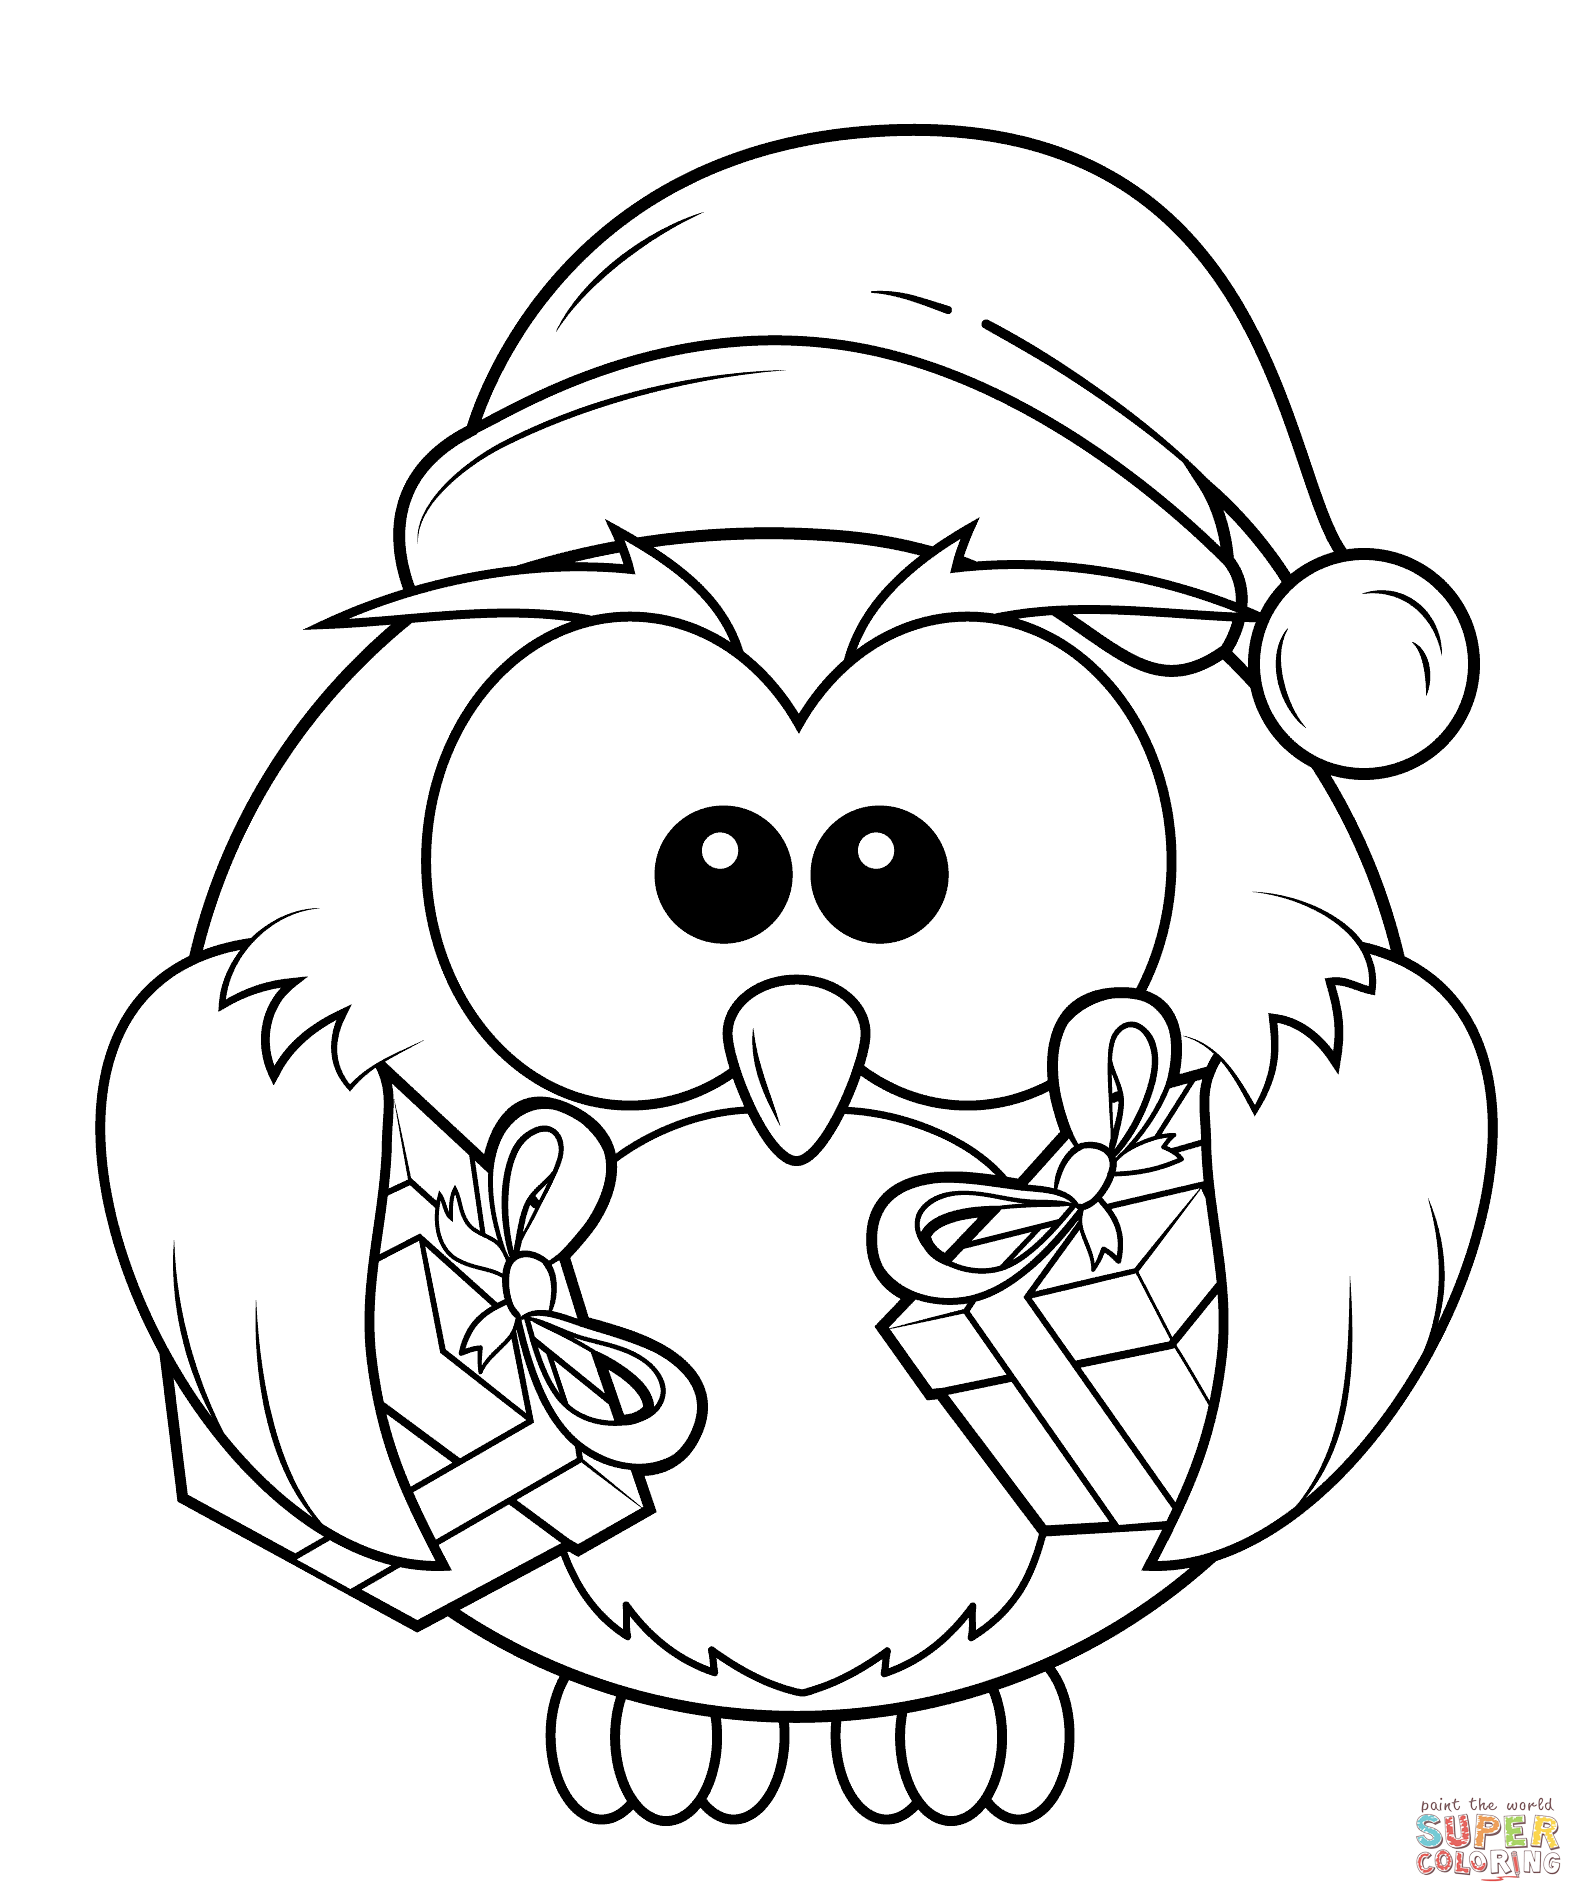 colored pictures of owls peaceful owl owls adult coloring pages of colored pictures owls